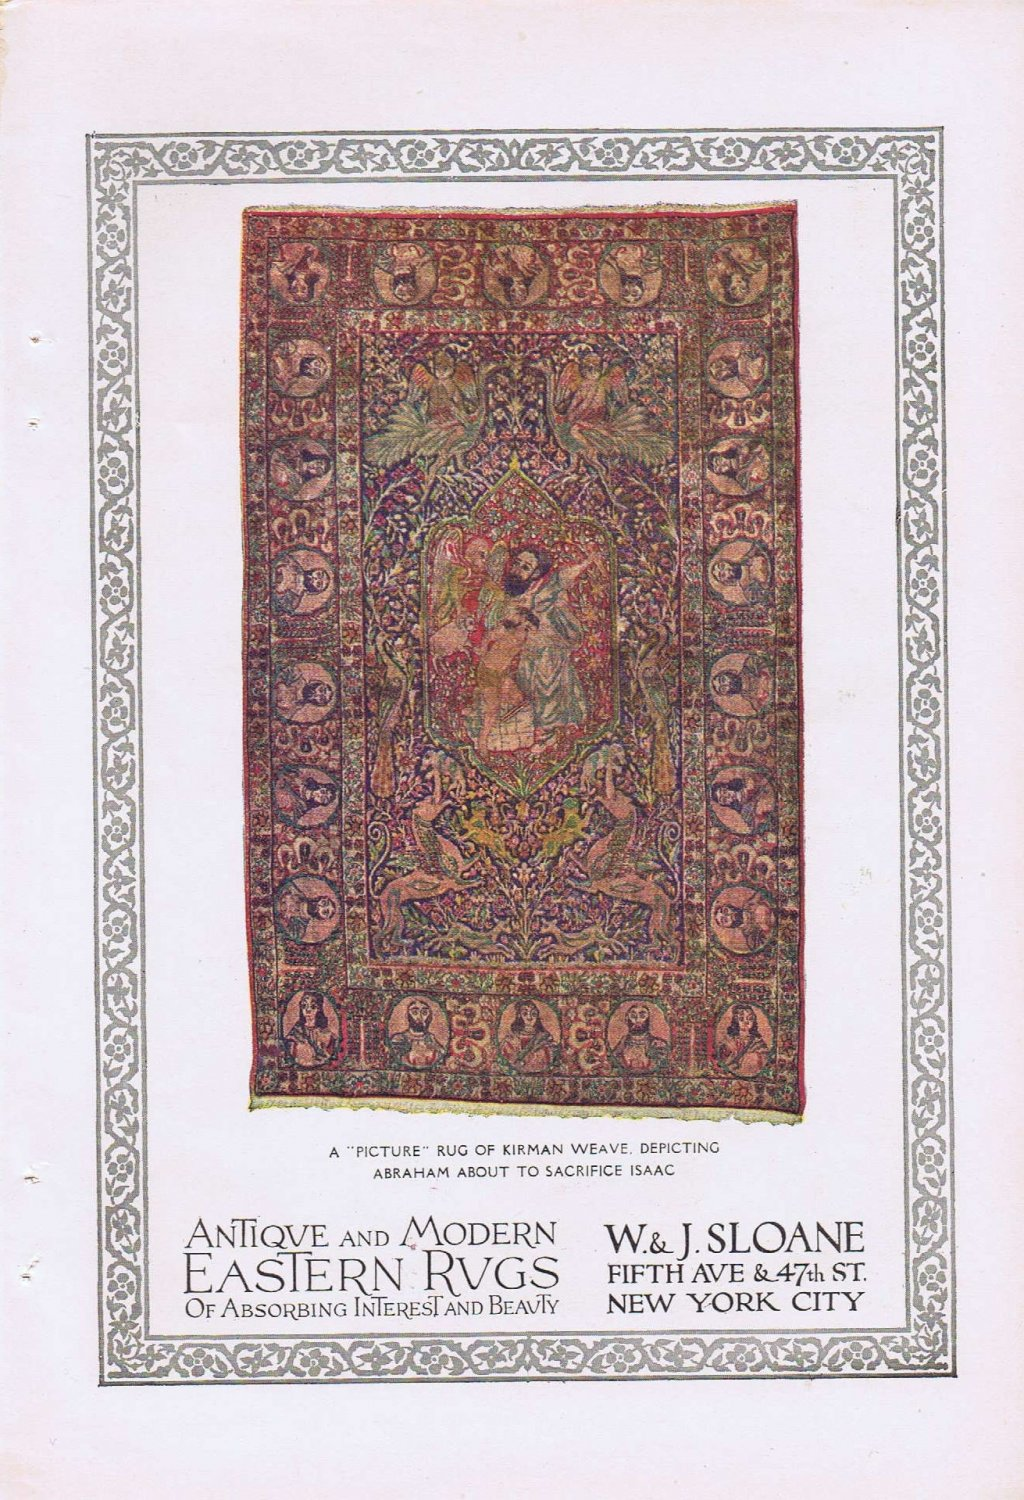 1920  Kirman Weave Picture Rug  of Abraham and Isaac Vintage Advertisement